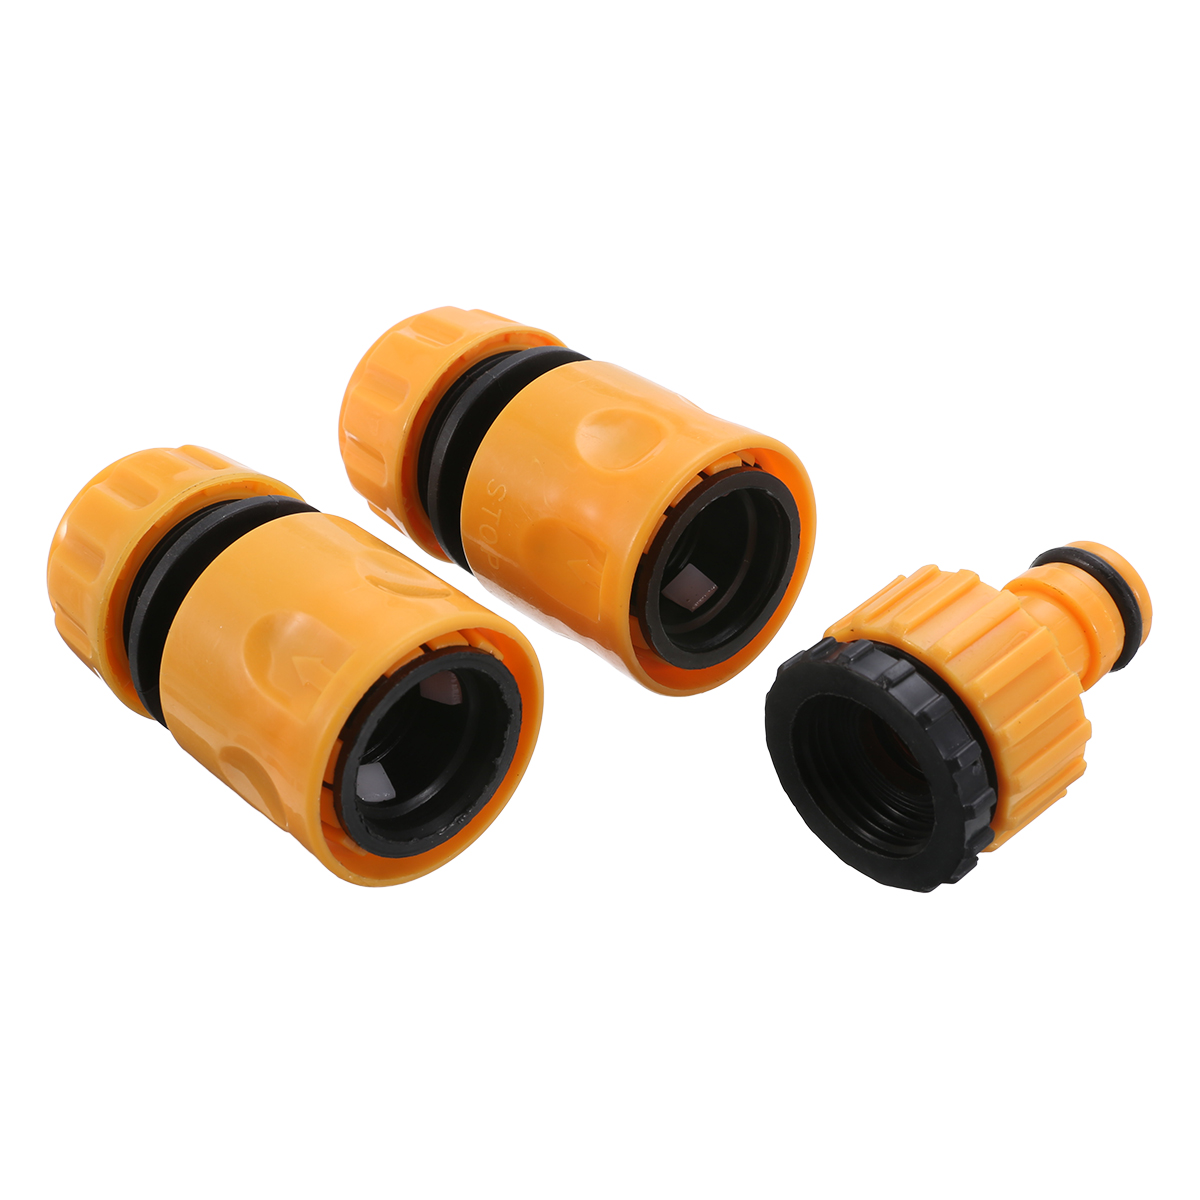 """3PCS Fast Coupling Adapter Drip Tape For Irrigation Hose Connector With 1/2"""" 3/4"""" Barbed Connector Garden Irrigation Tool Yellow"""